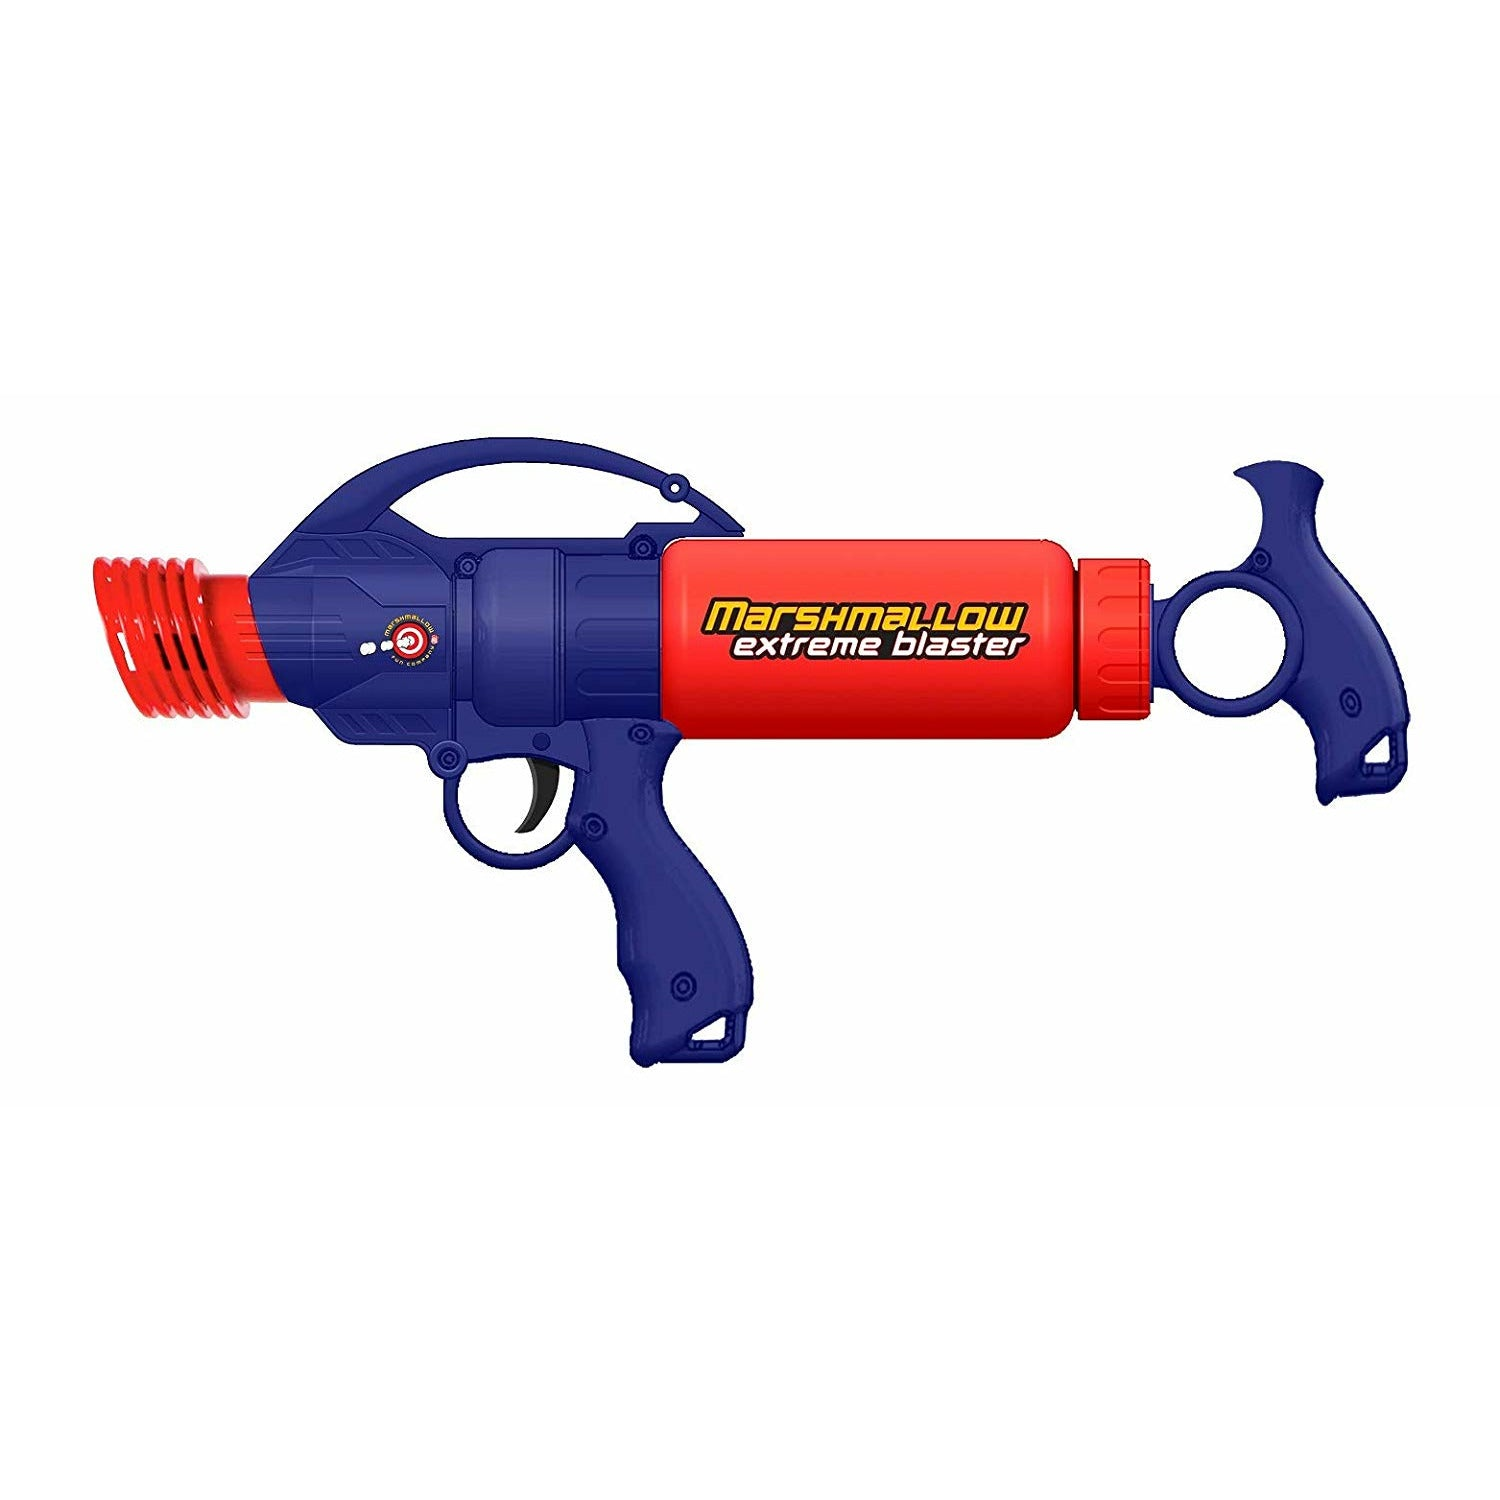 Marshmallow Extreme Blaster with Targets